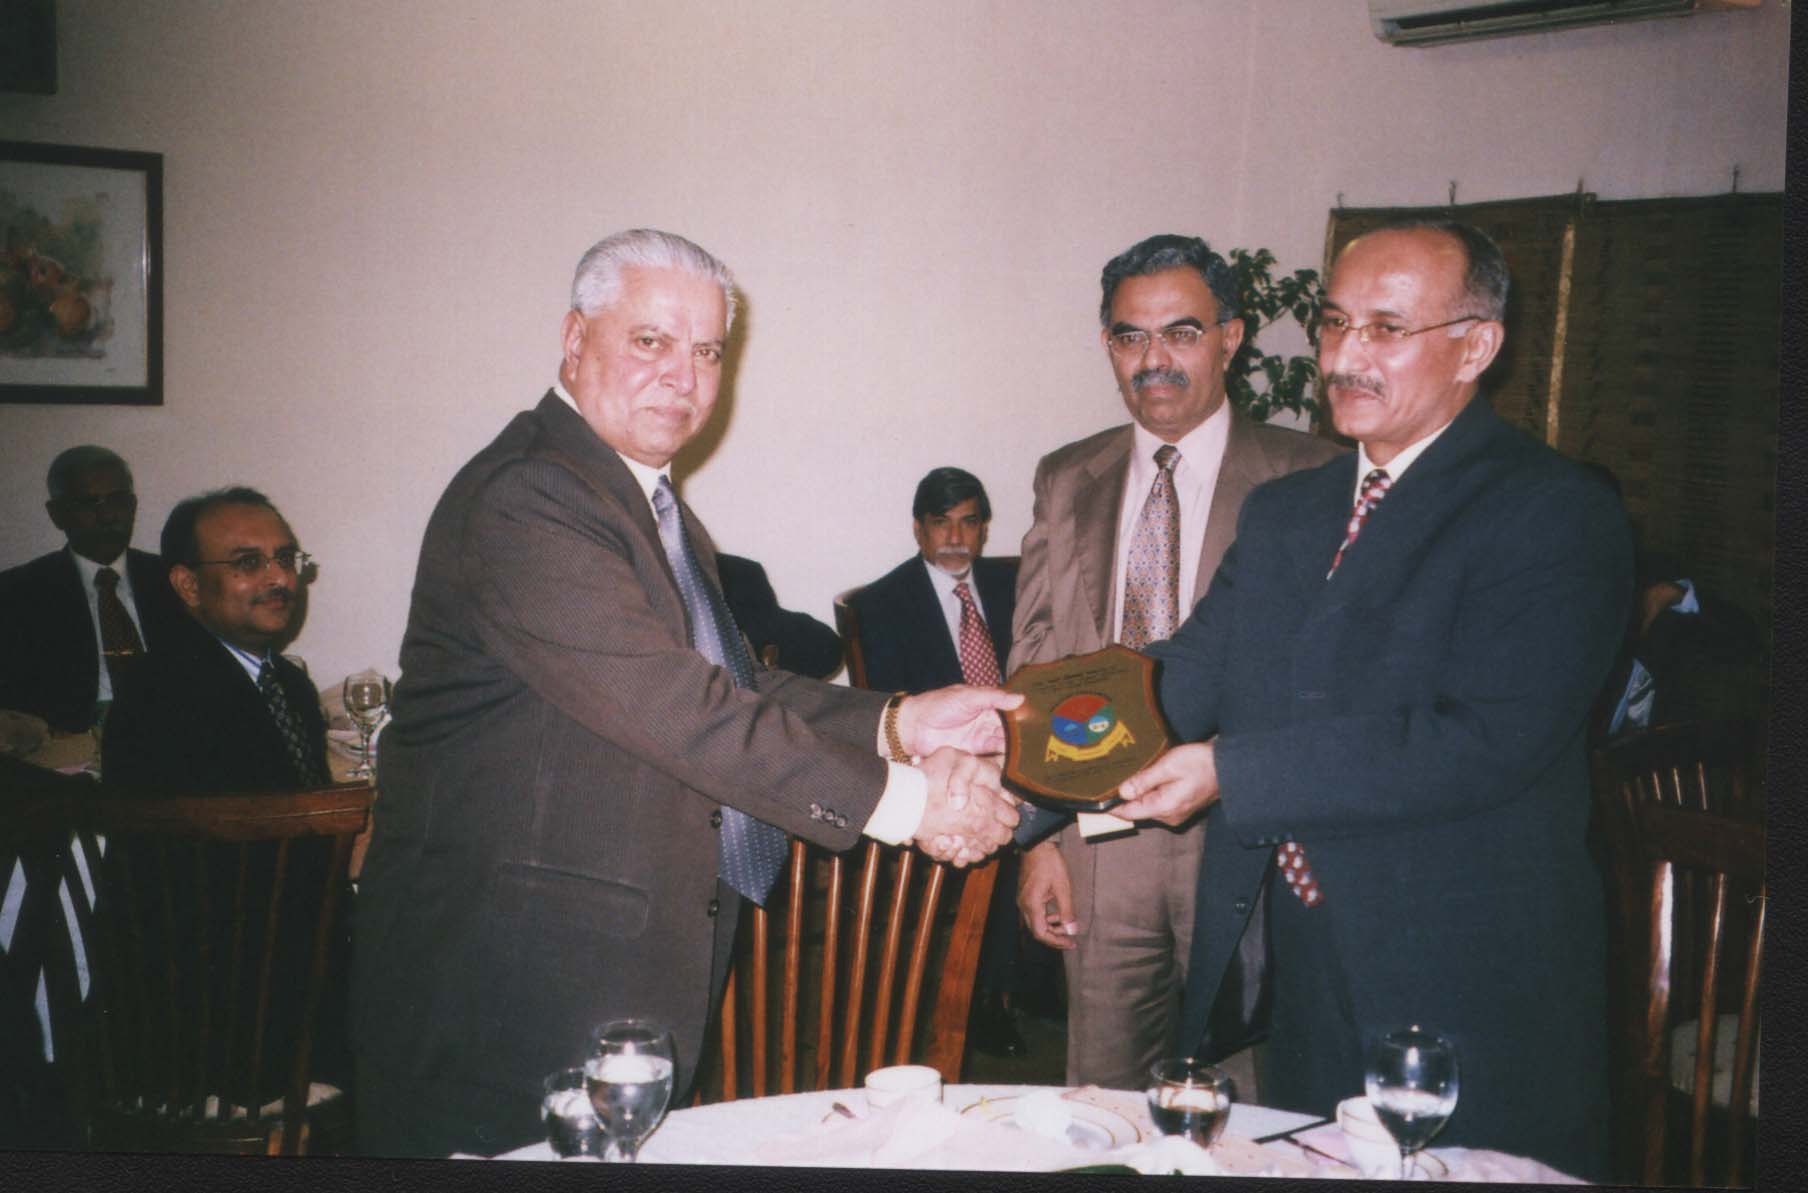 File Foto - taken at Dilshad Sb's farewell dinner